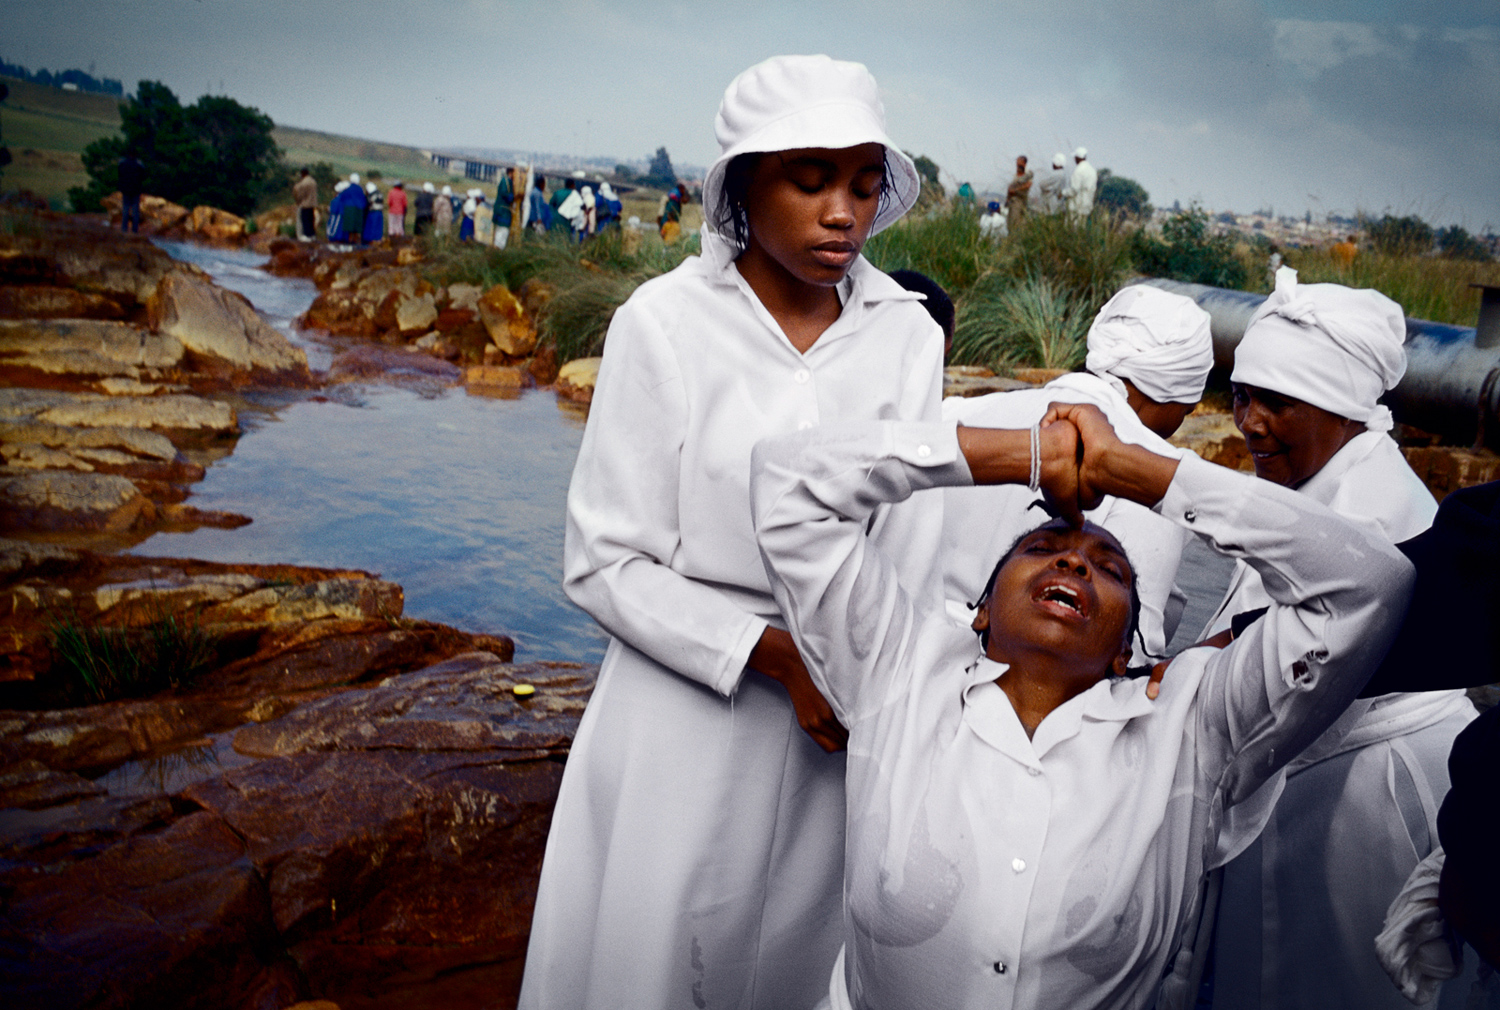 Women from Eastern Baptist Zionist Church pray during an outdoor service close to Orlando West in Soweto, Johannesburg, South Africa, March 2005. They celebrated Easter weekend in Soweto.